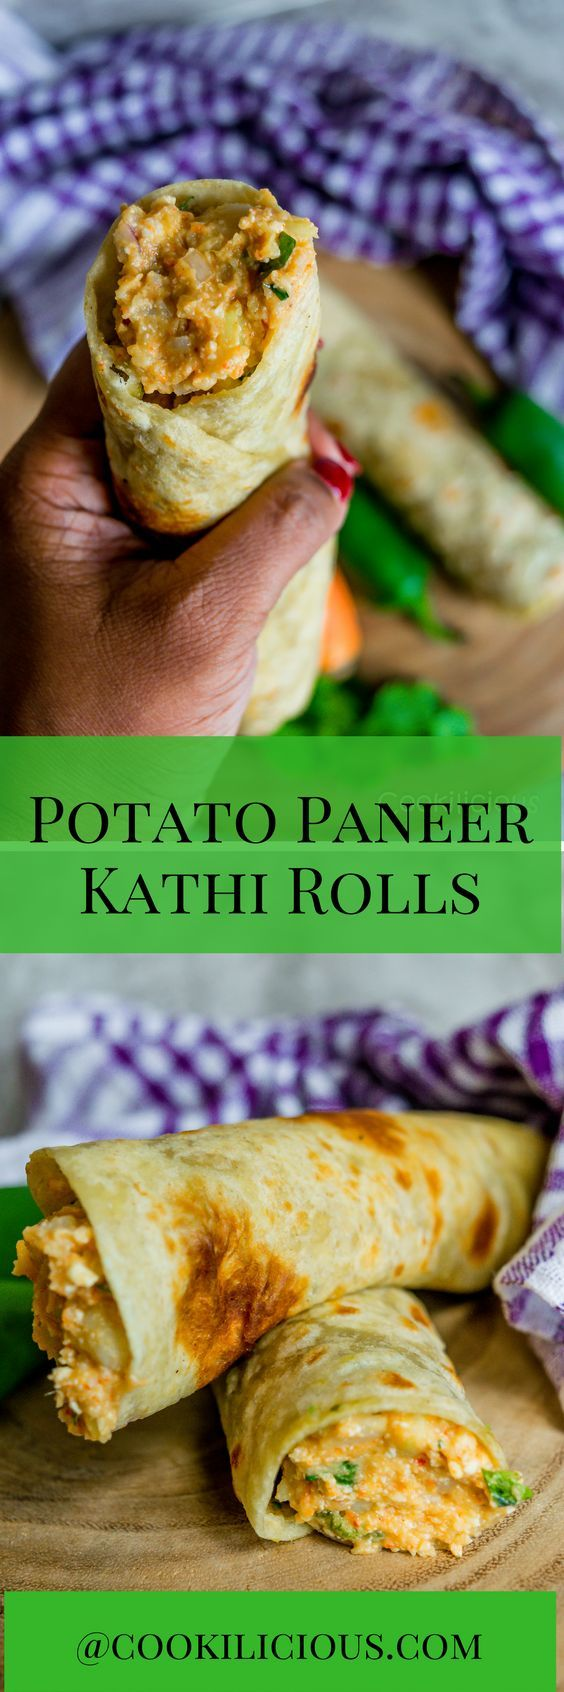 Delicious wraps or rolls stuffed with a spiced potato & paneer stuffing. These vegetarian kathi roll make for a good brunch, lunch or tiffin box. A chatpata snack that is filling & easy to make.